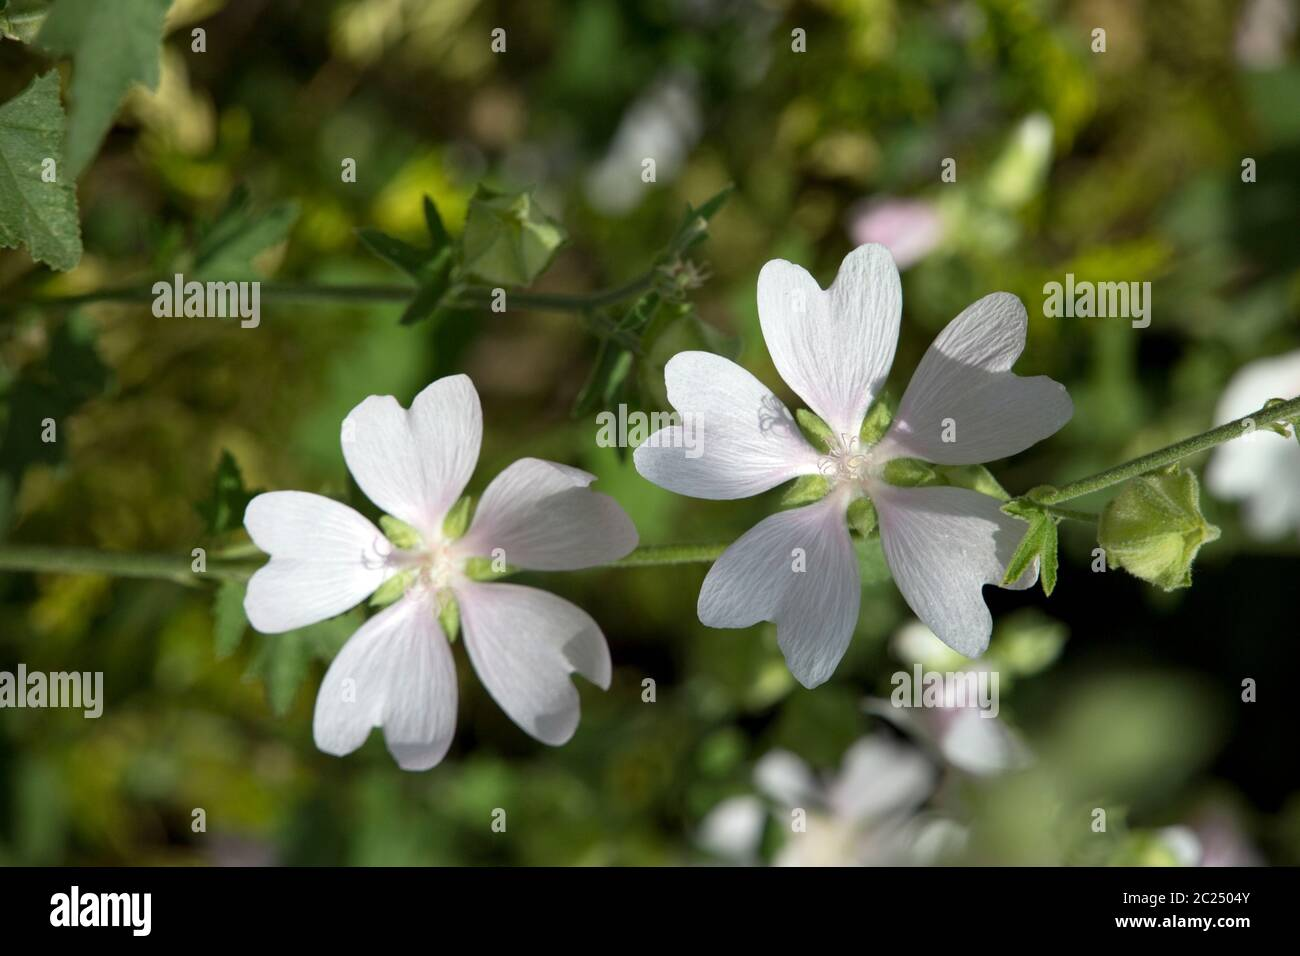 Blumenbeet Planer Blass High Resolution Stock Photography And Images - Alamy